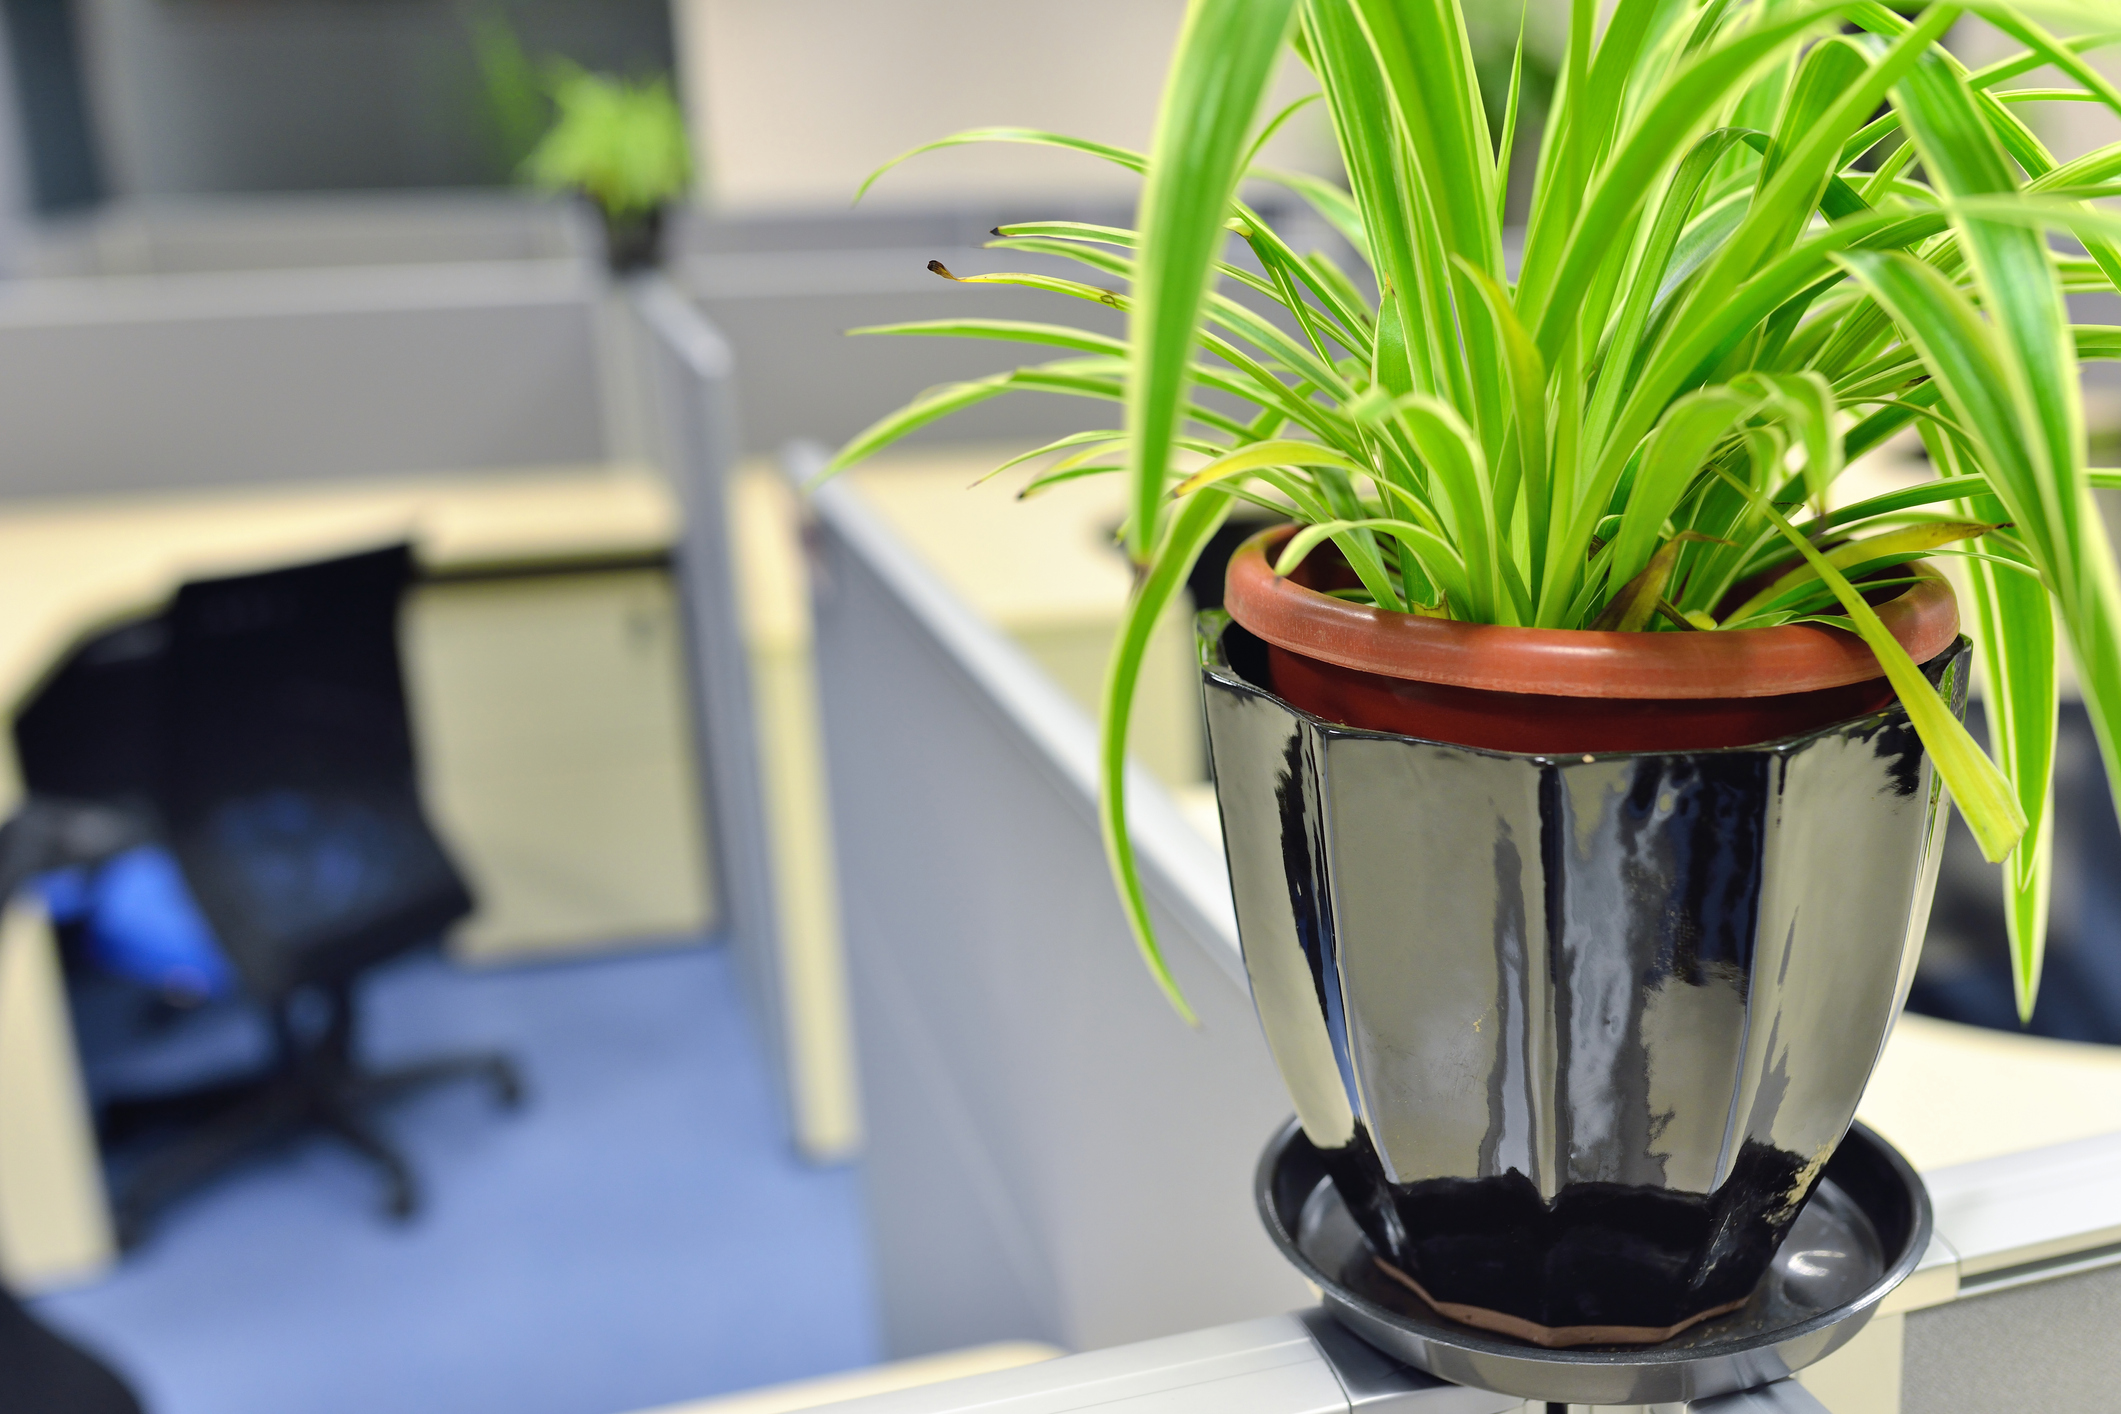 Adding fresh greenery to your cubicle space will boost your mood, increase productivity, and decrease stress. (Spider Plant shown above)